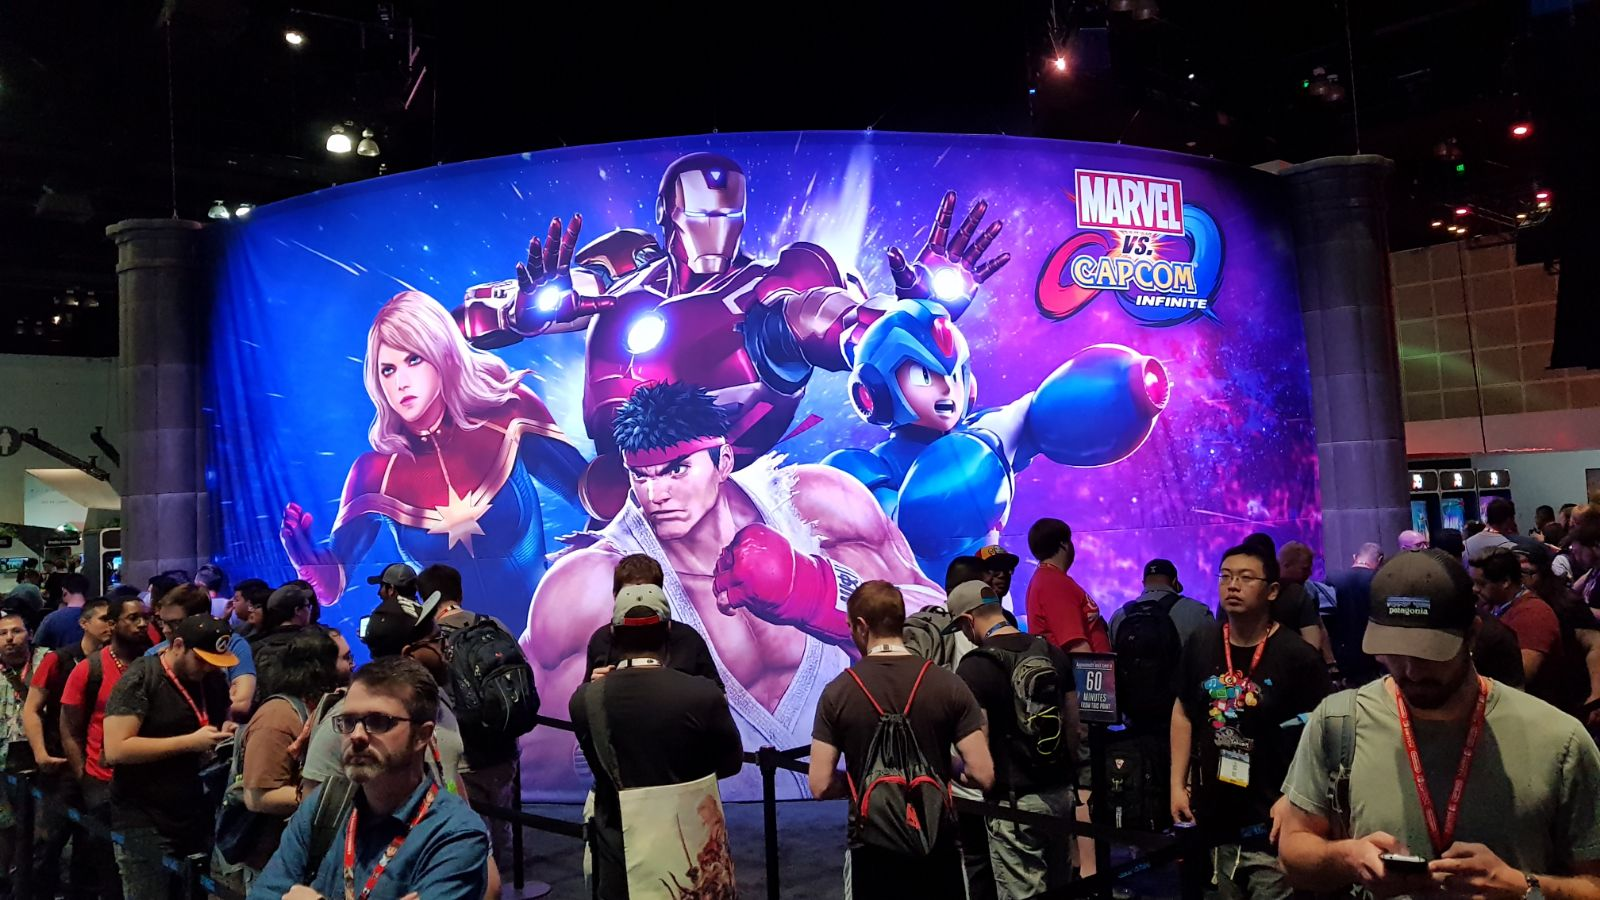 marvel vs capcom E3